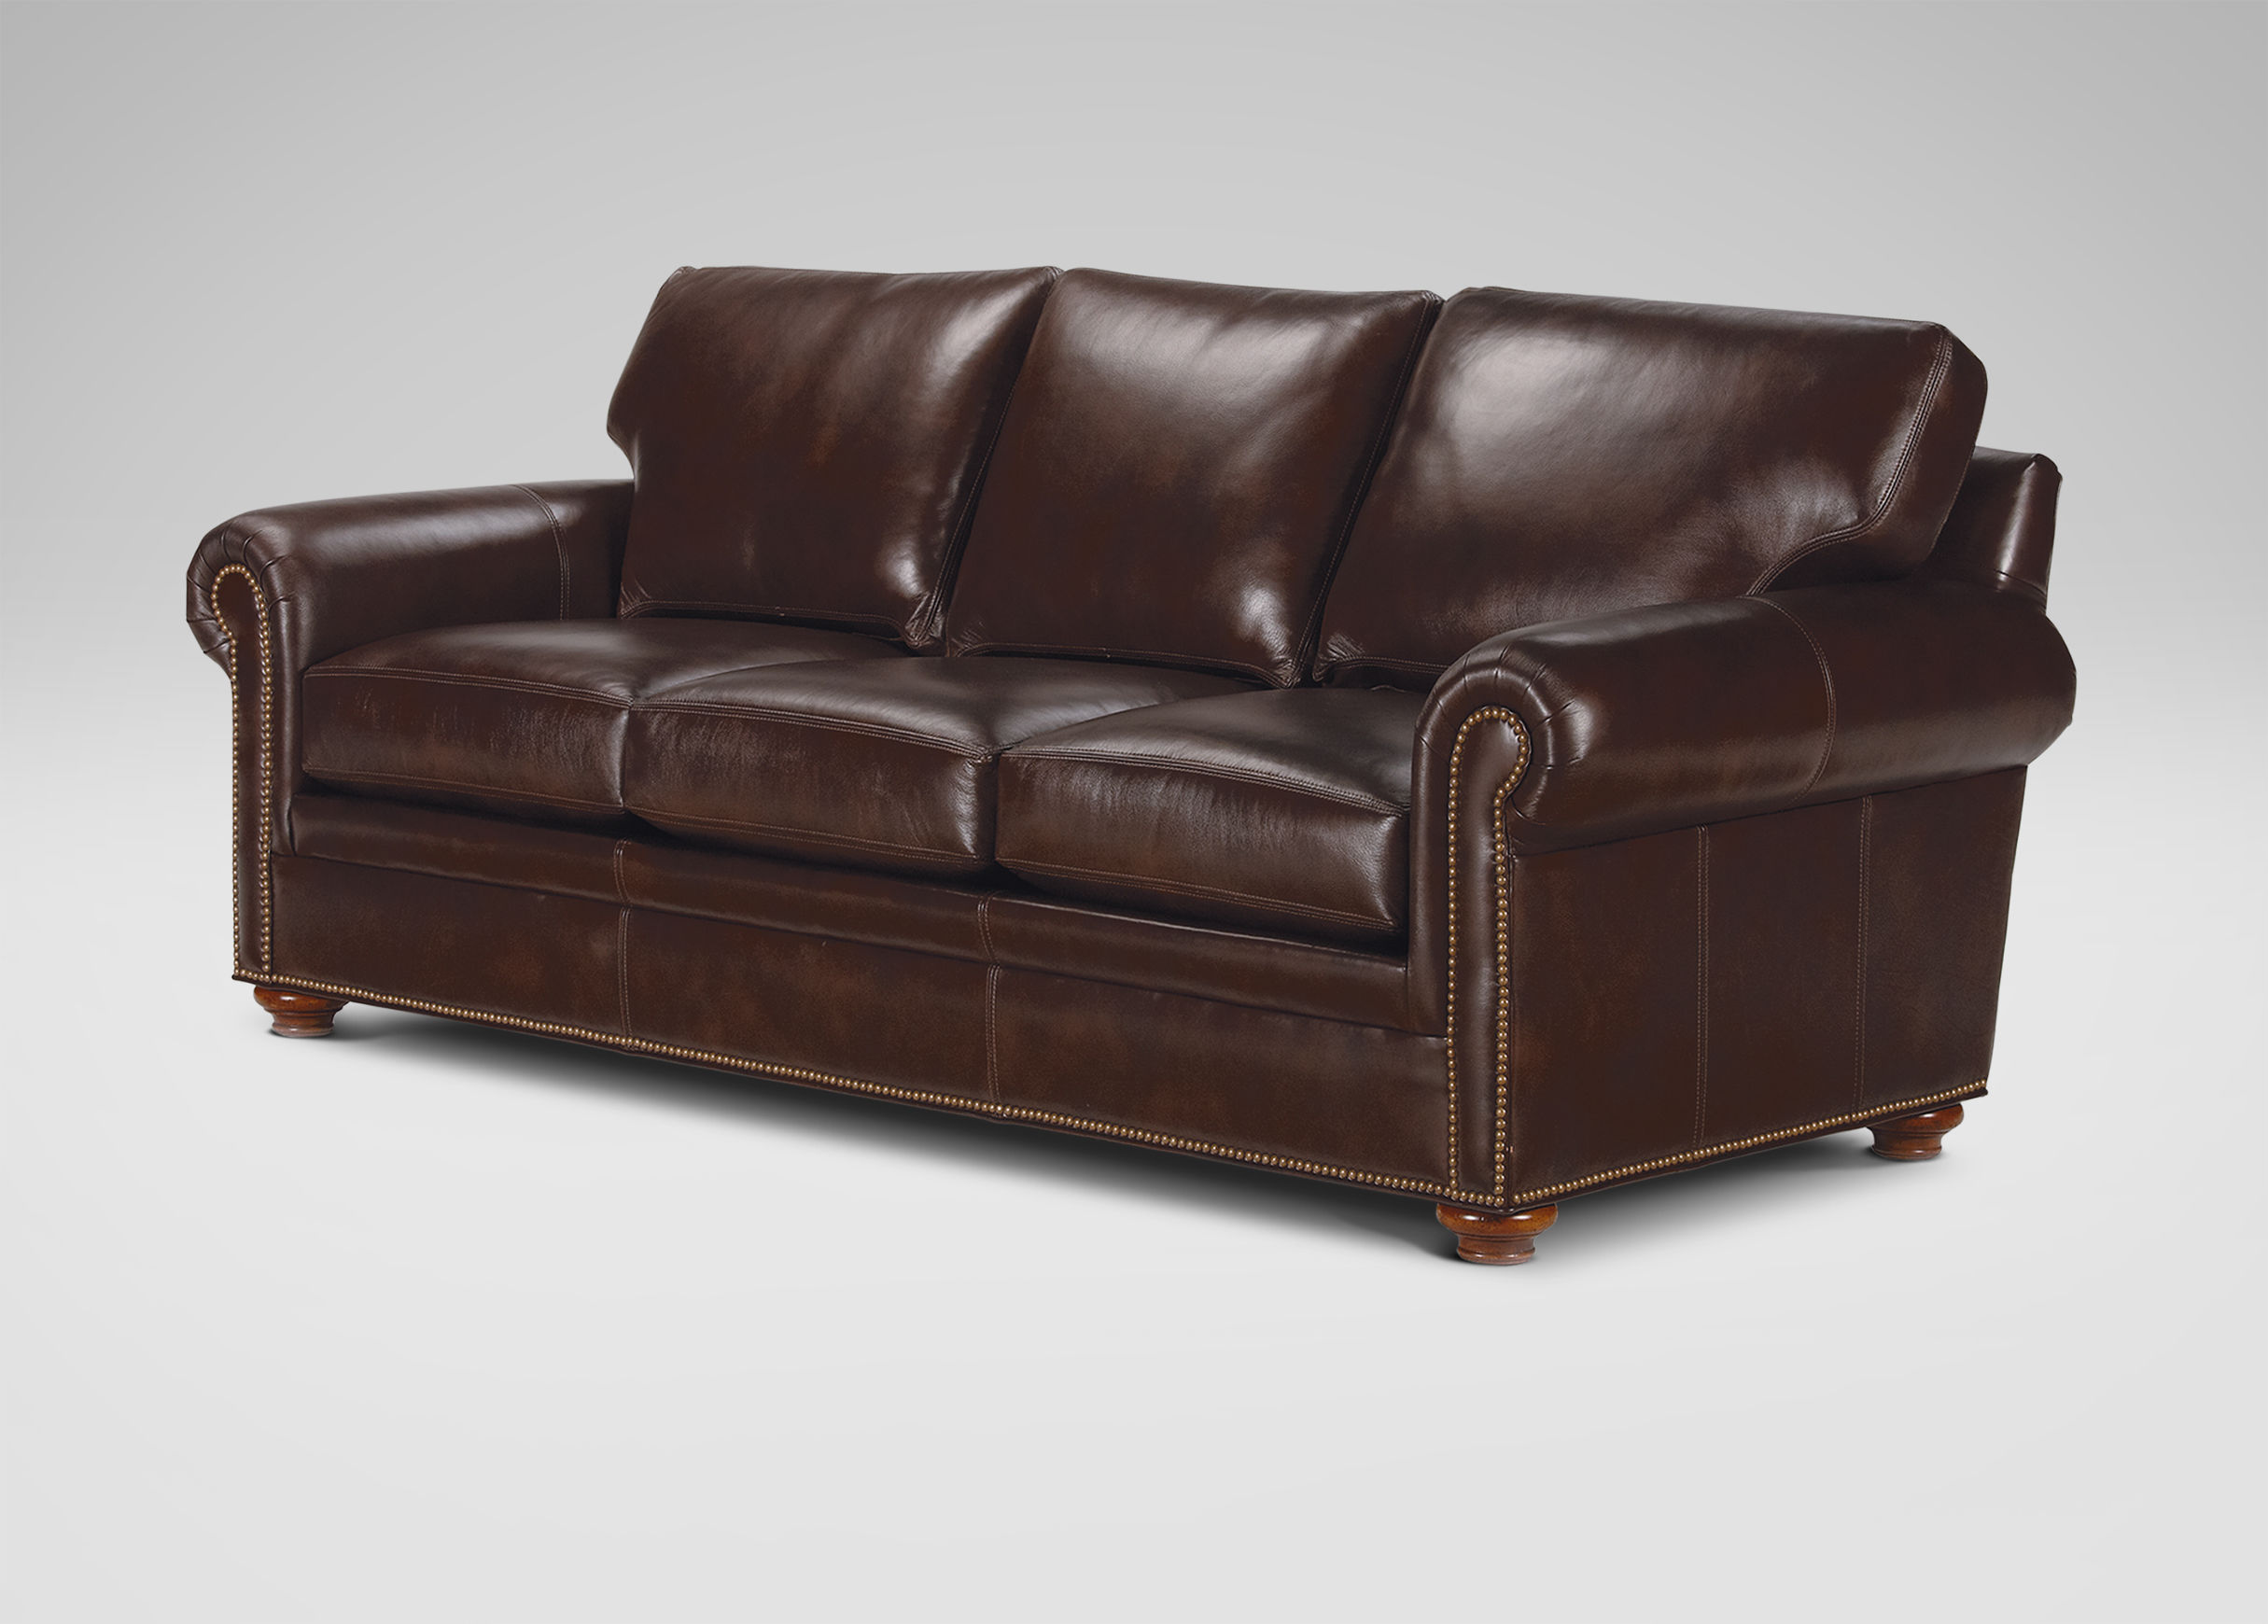 Ethan allen leather furniture homesfeed for Leather furniture